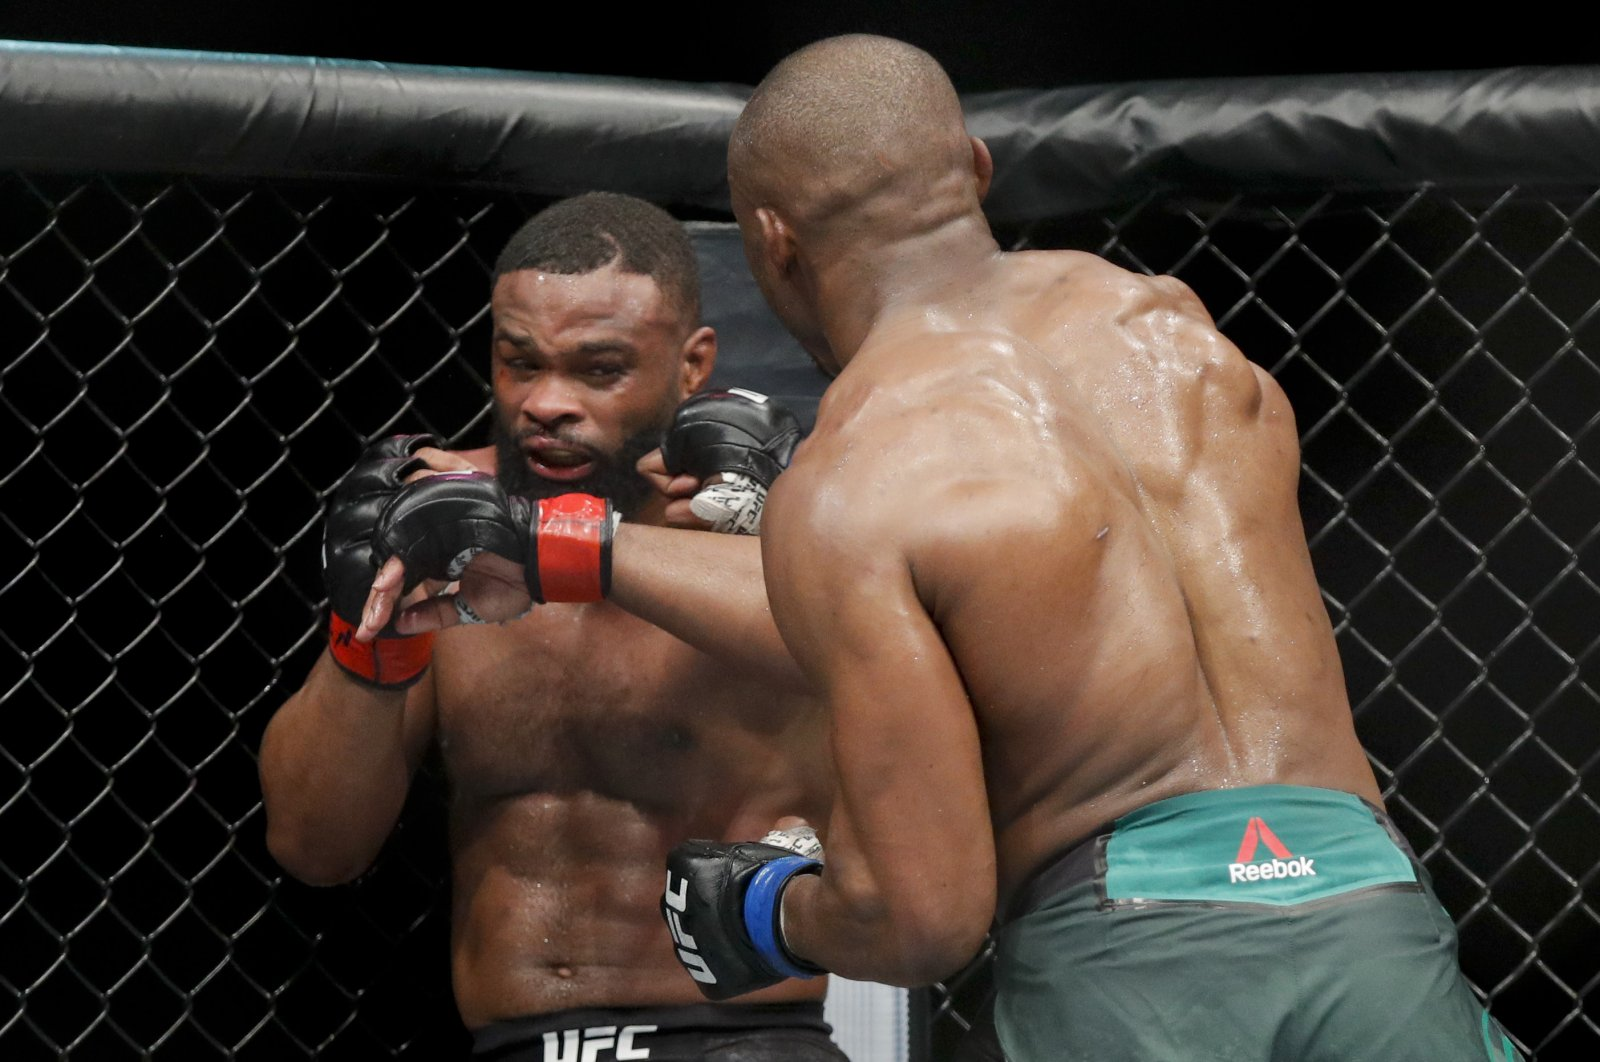 Kamaru Usman (R) hits Tyron Woodley in a welterweight mixed martial arts title fight at UFC 235, Las Vegas, U.S., March 2, 2019. (AP Photo)